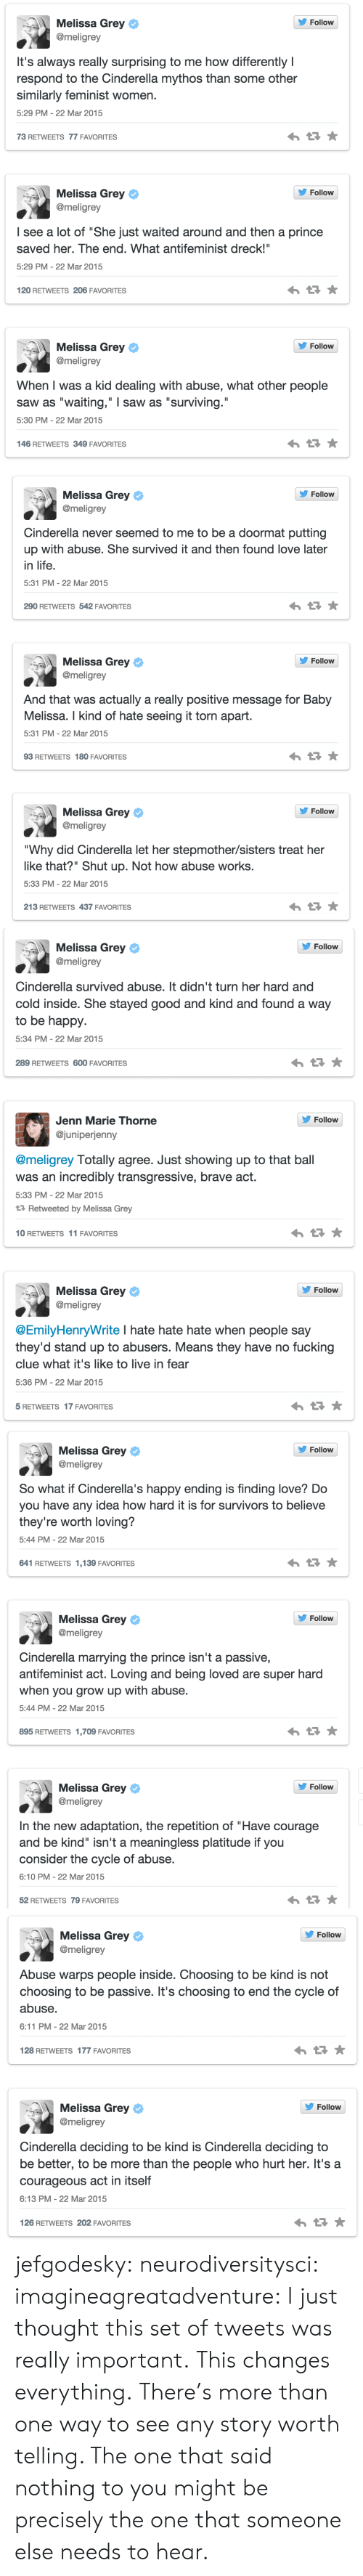 """jenn: s, Melissa Grey  Follow  @meligrey  It's always really surprising to me how differently I  respond to the Cinderella mythos than some other  similarly feminist women.  5:29 PM-22 Mar 2015  73 RETWEETS 77 FAVORITES  Follow  Melissa Grey  @meligrey  I see a lot of """"She just waited around and then a prince  saved her. The end. What antifeminist dreck!""""  5:29 PM-22 Mar 2015  120 RETWEETS 206 FAVORITES  s, Melissa Grey  Follow  @meligrey  When I was a kid dealing with abuse, what other people  saw as """"waiting,"""" I saw as """"surviving.""""  5:30 PM- 22 Mar 2015  146 RETWEETS 349 FAVORITES   Melissa Grey ф  @meligrey  ' Follow  Cinderella never seemed to me to be a doormat putting  up with abuse. She survived it and then found love later  in life  5:31 PM-22 Mar 2015  290 RETWEETS 542 FAVORITES  Follow  Melissa Grey ф  @meligrey  And that was actually a really positive message for Baby  Melissa. I kind of hate seeing it torn apart.  5:31 PM-22 Mar 2015  93 RETWEETS 180 FAVORITES  Follow  Melissa Grey ф  @meligrey  """"Why did Cinderella let her stepmother/sisters treat her  like that?"""" Shut up. Not how abuse works.  5:33 PM-22 Mar 2015  213 RETWEETS 437 FAVORITES   s, Melissa Grey  @meligrey  Follow  Cinderella survived abuse. It didn't turn her hard and  cold inside. She stayed good and kind and found a way  to be happy  5:34 PM- 22 Mar 2015  289 RETWEETS 600 FAVORITES  Follovw  Jenn Marie Thorne  @juniperjenny  @meligrey Totally agree. Just showing up to that ball  was an incredibly transgressive, brave act.  5:33 PM- 22 Mar 2015  Retweeted by Melissa Grey  10 RETWEETS 11 FAVORITES  s, Melissa Grey  Follow  @meligrey  @EmilyHenryWrite I hate hate hate when people say  they'd stand up to abusers. Means they have no fucking  clue what it's like to live in fear  5:36 PM- 22 Mar 2015  5 RETWEETS 17 FAVORITES   Follow  Melissa Grey ф  @meligrey  So what if Cinderella's happy ending is finding love? Do  you have any idea how hard it is for survivors to believe  they're worth lovi"""